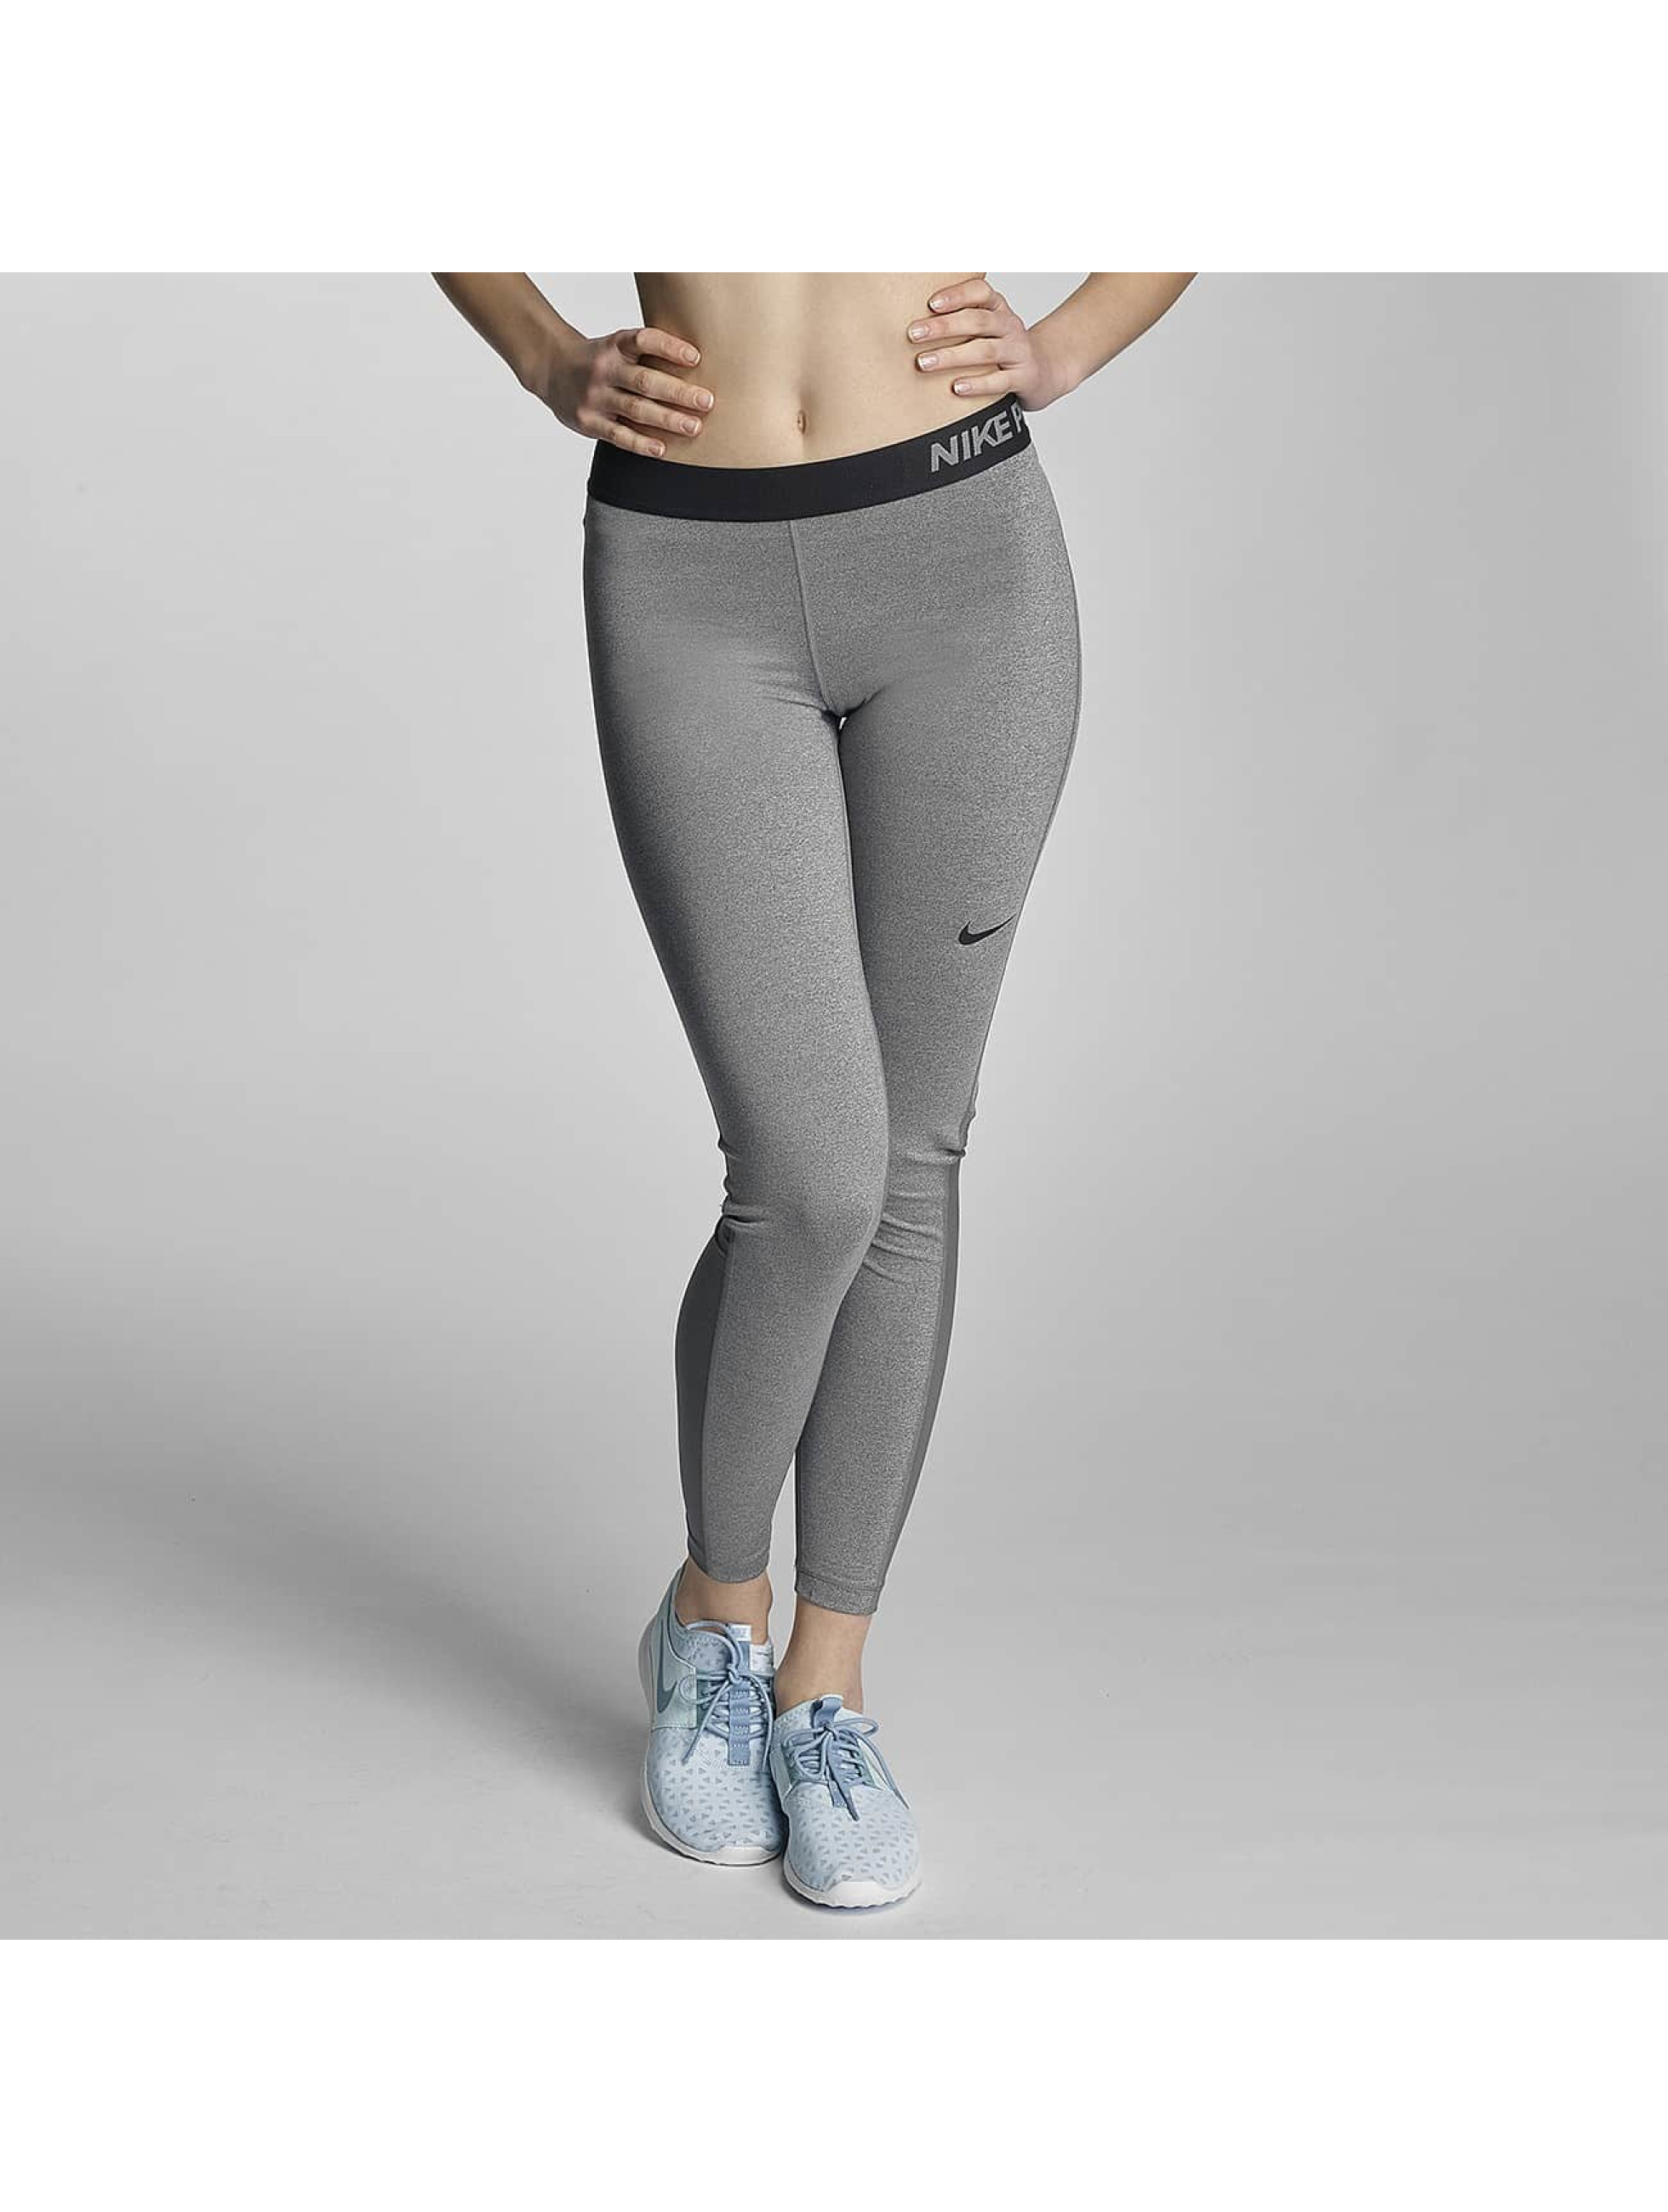 Nike Frauen Legging Pro Cool in grau